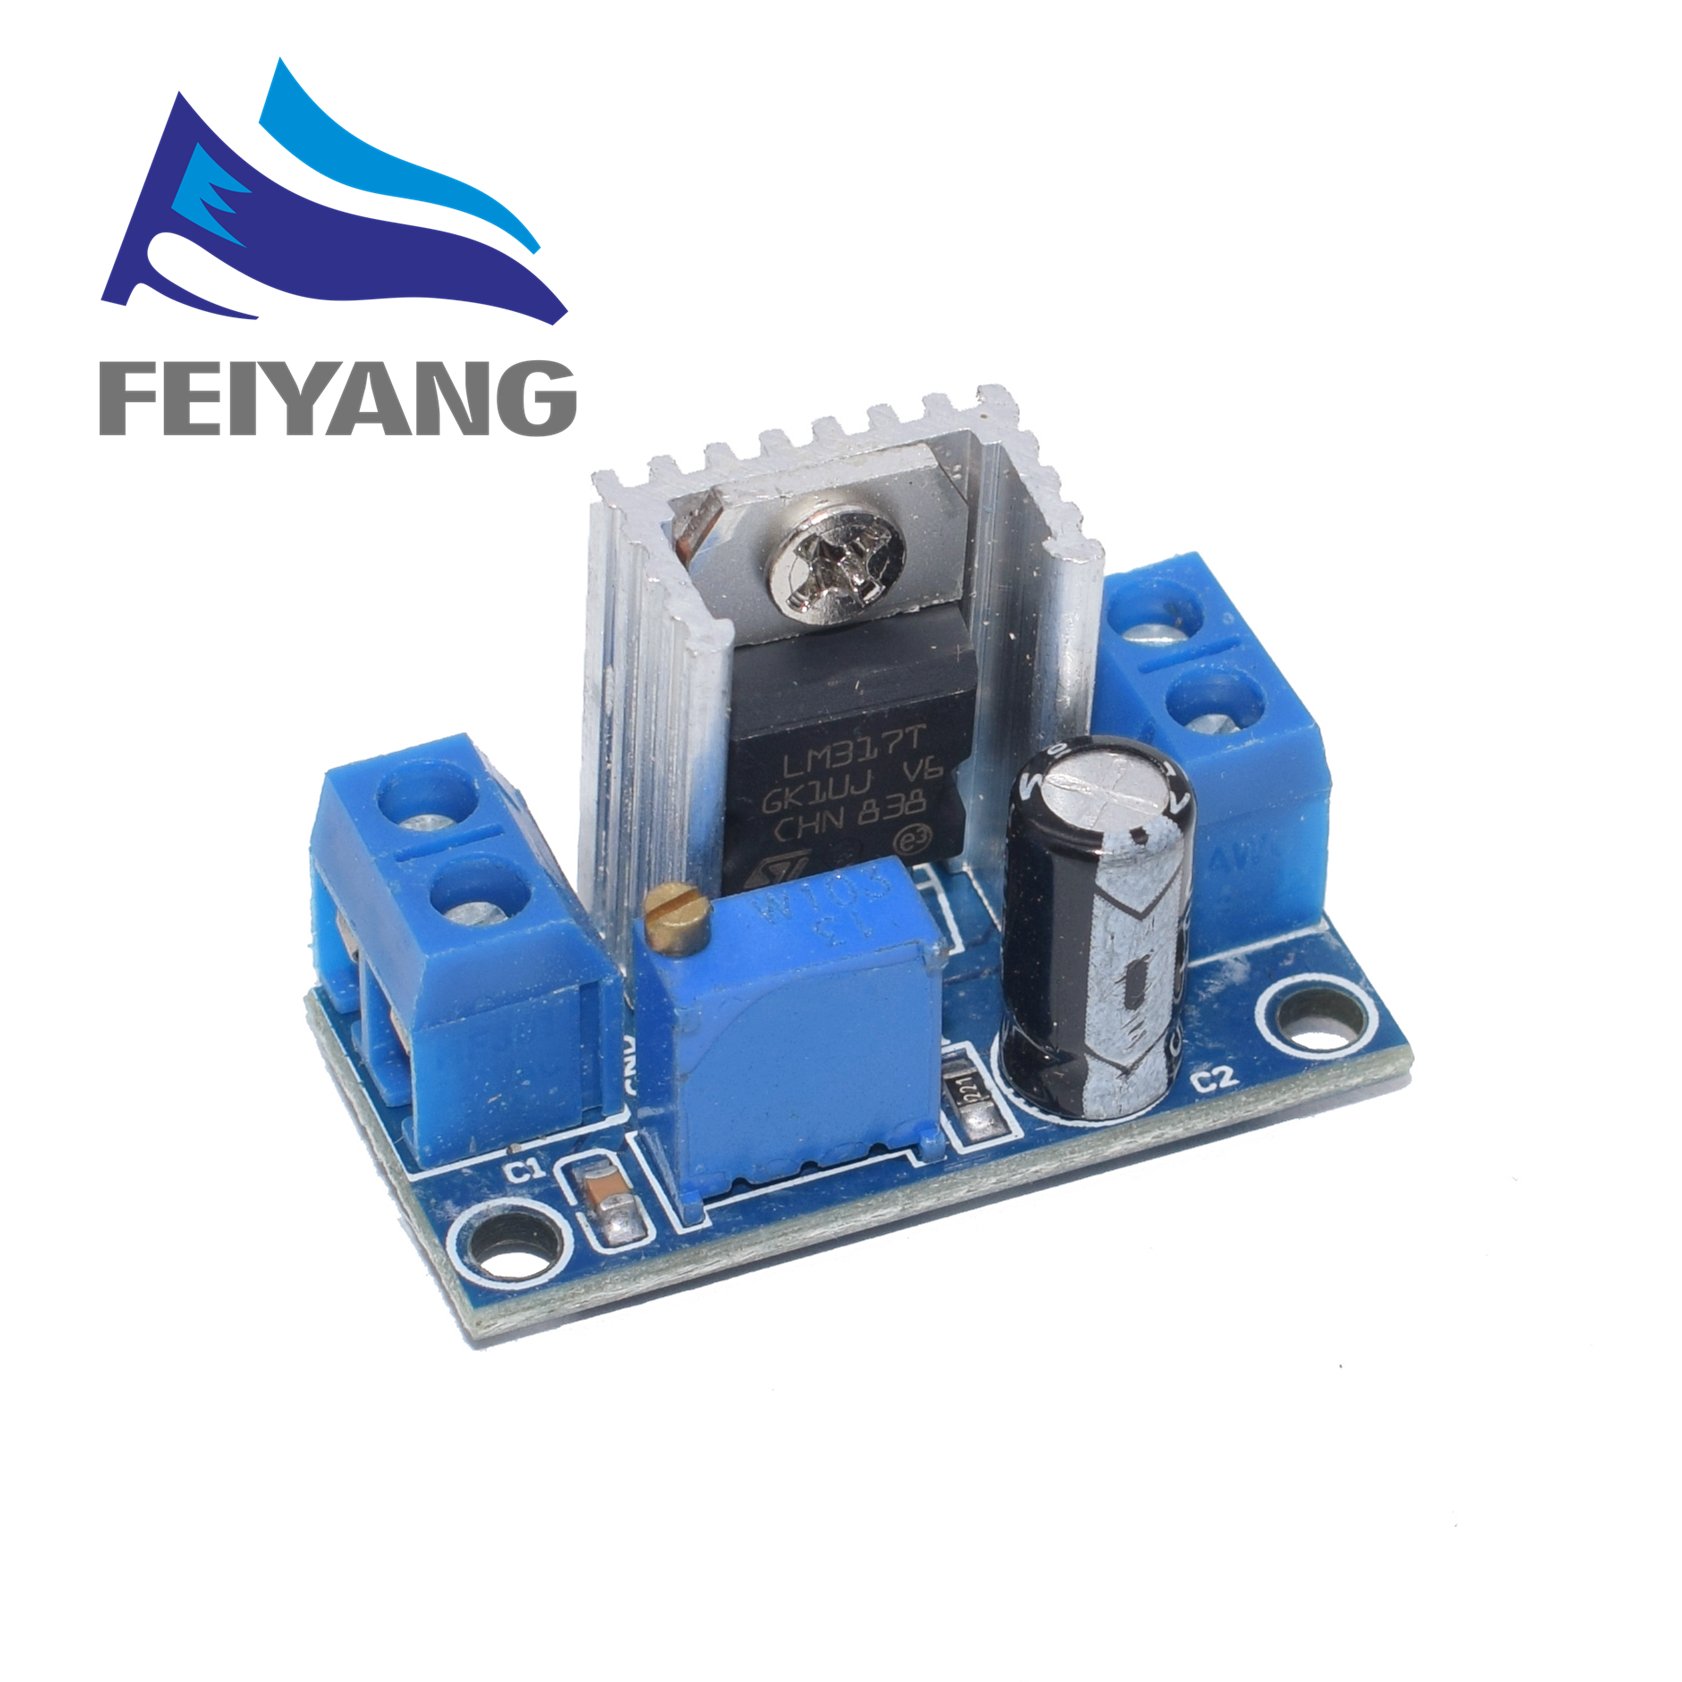 100PCS LM317 Adjustable Voltage Regulator Power Supply DC DC Converter Buck Step Down Circuit Board Module Linear Regulator-in Integrated Circuits from Electronic Components & Supplies